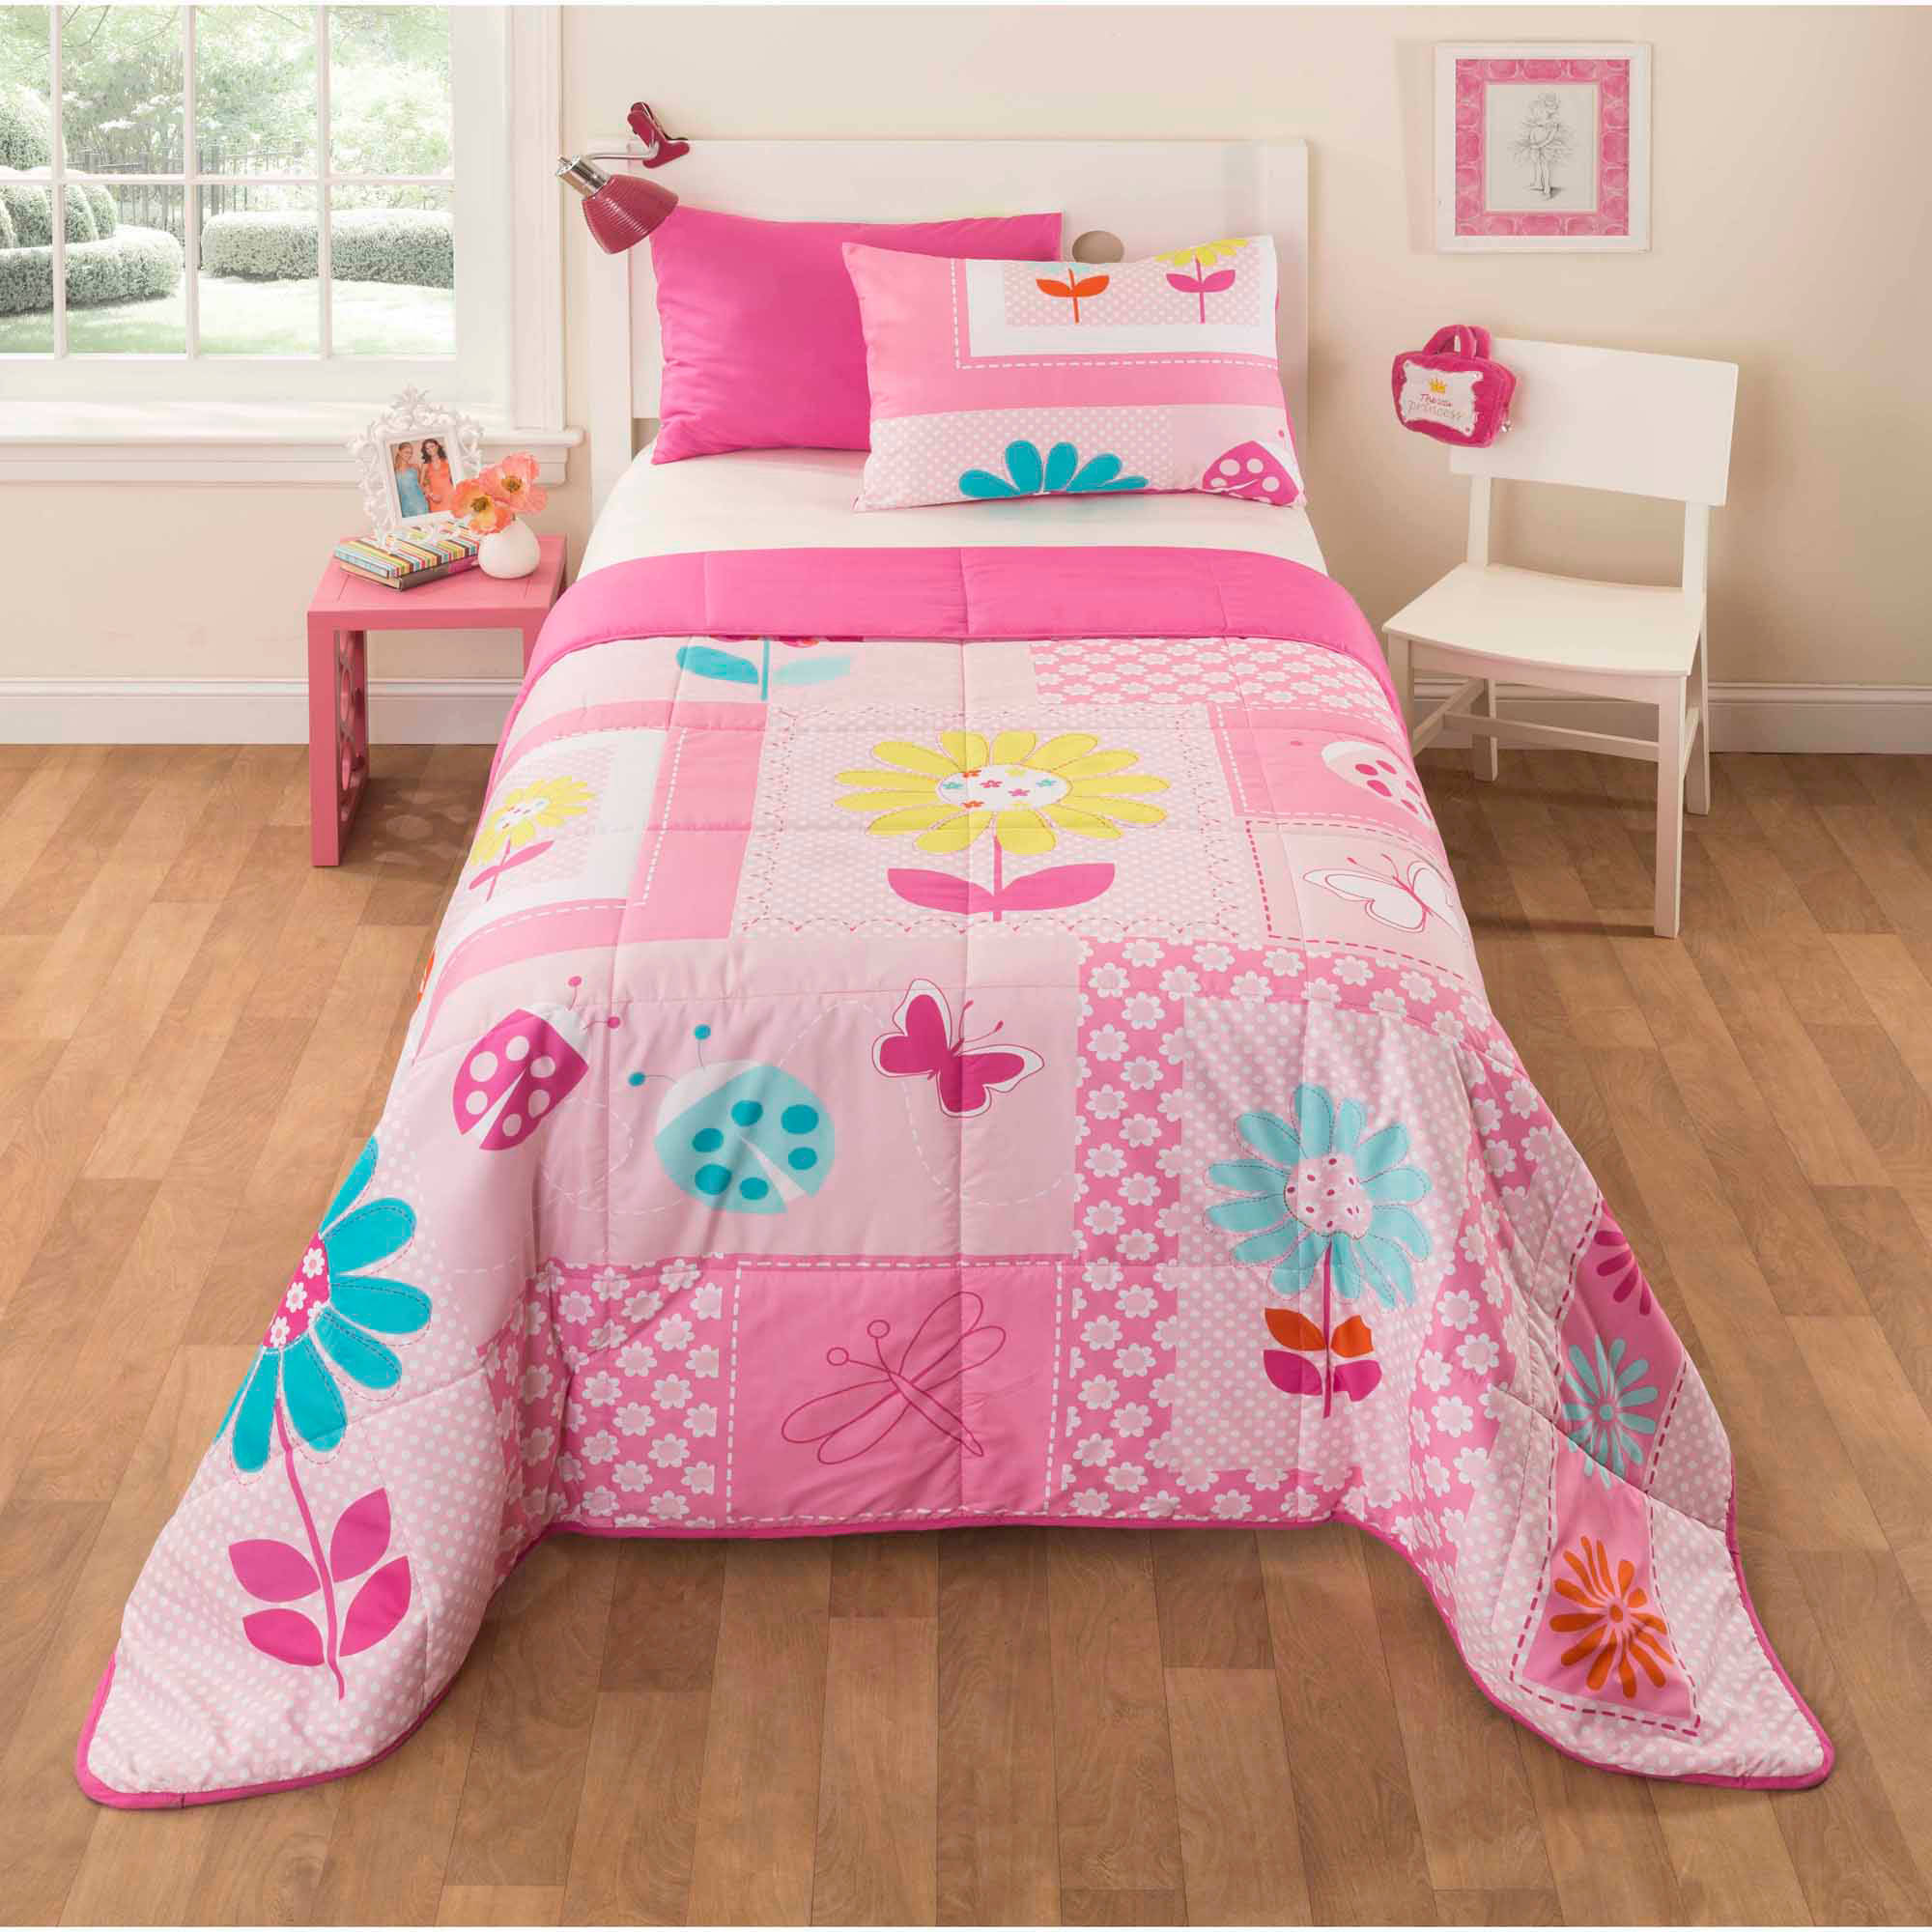 Mainstays Kids Daisy Floral Bedding Comforter Set